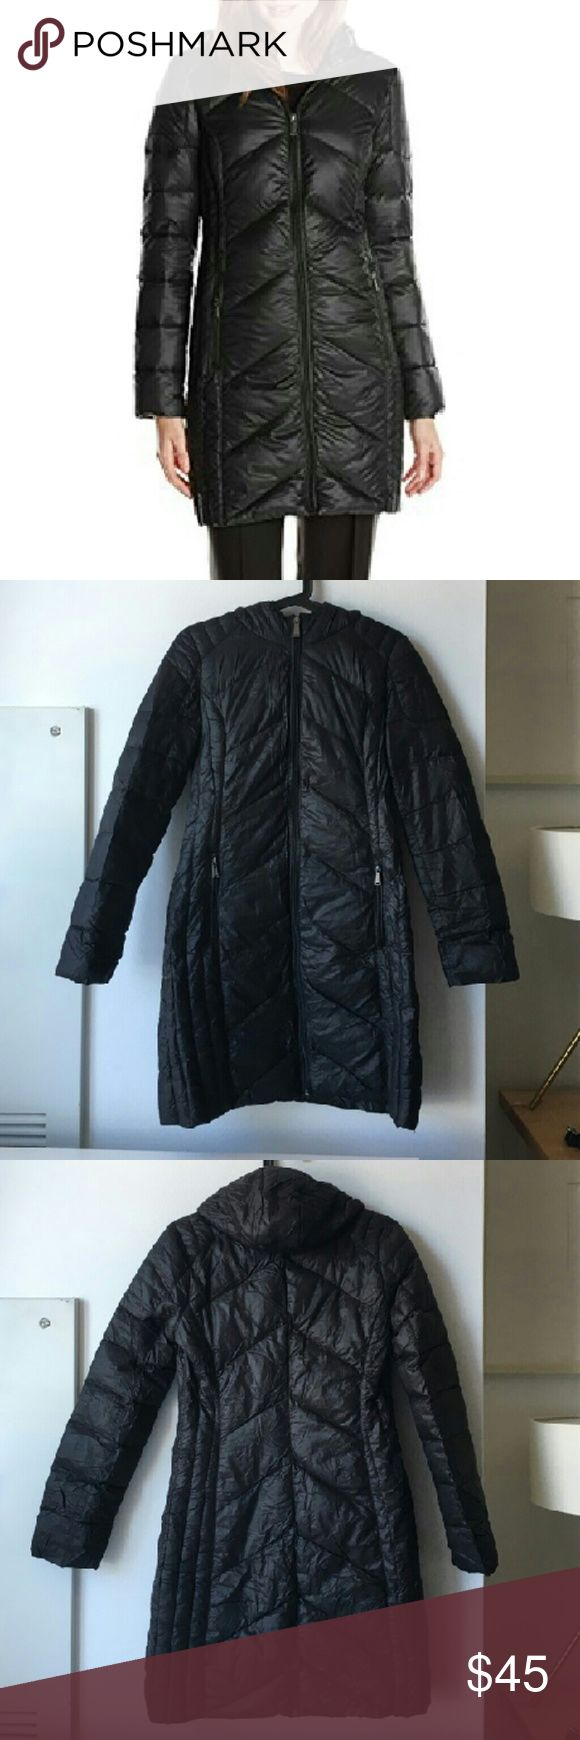 BCBG packable down jacket Ultra light weight packable down jacket by BCBGeneration. Super soft and insulated. In perfect condition. Genuine down fill; mixture of down and feathers. 100% nylon. Machine wash. Packable pouch included. No rips, tears or stains. BCBGeneration Jackets & Coats